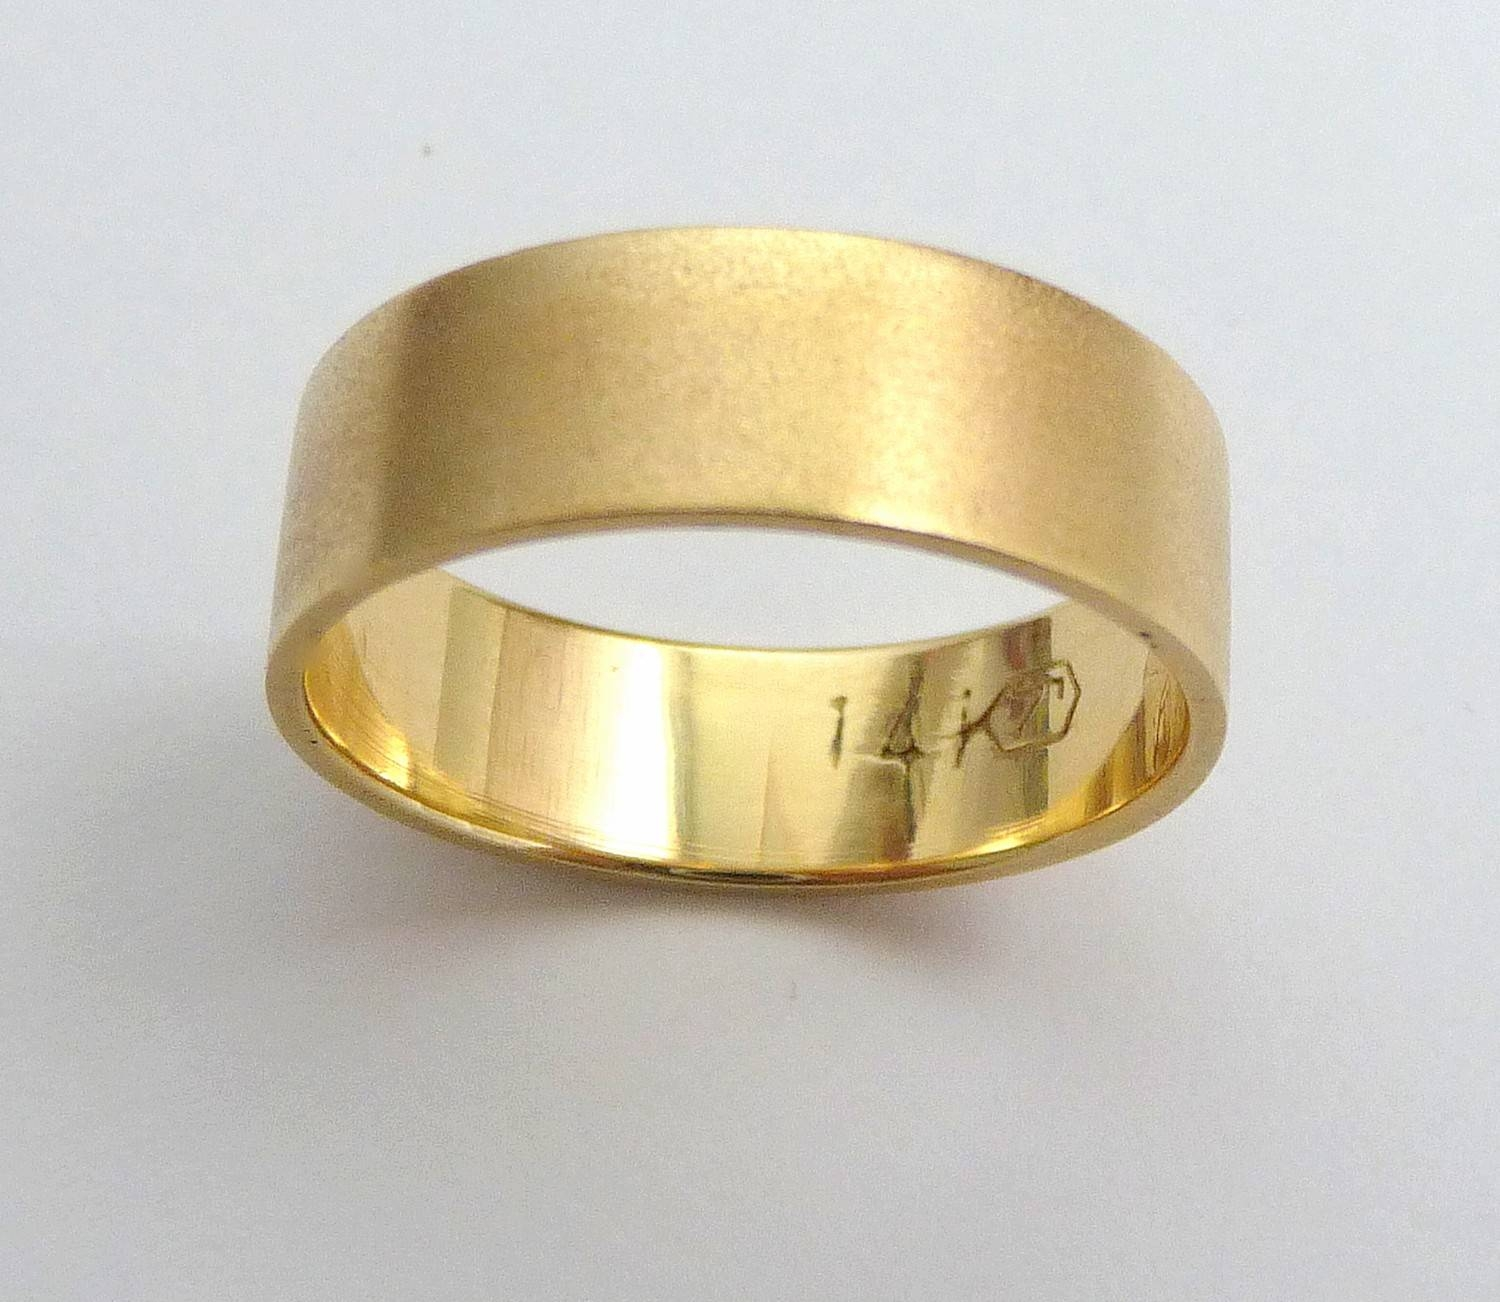 Gold Wedding Band Men Wedding Ring Flat With Sandblast Finish With Regard To Yellow Gold Wedding Bands For Men (View 11 of 15)